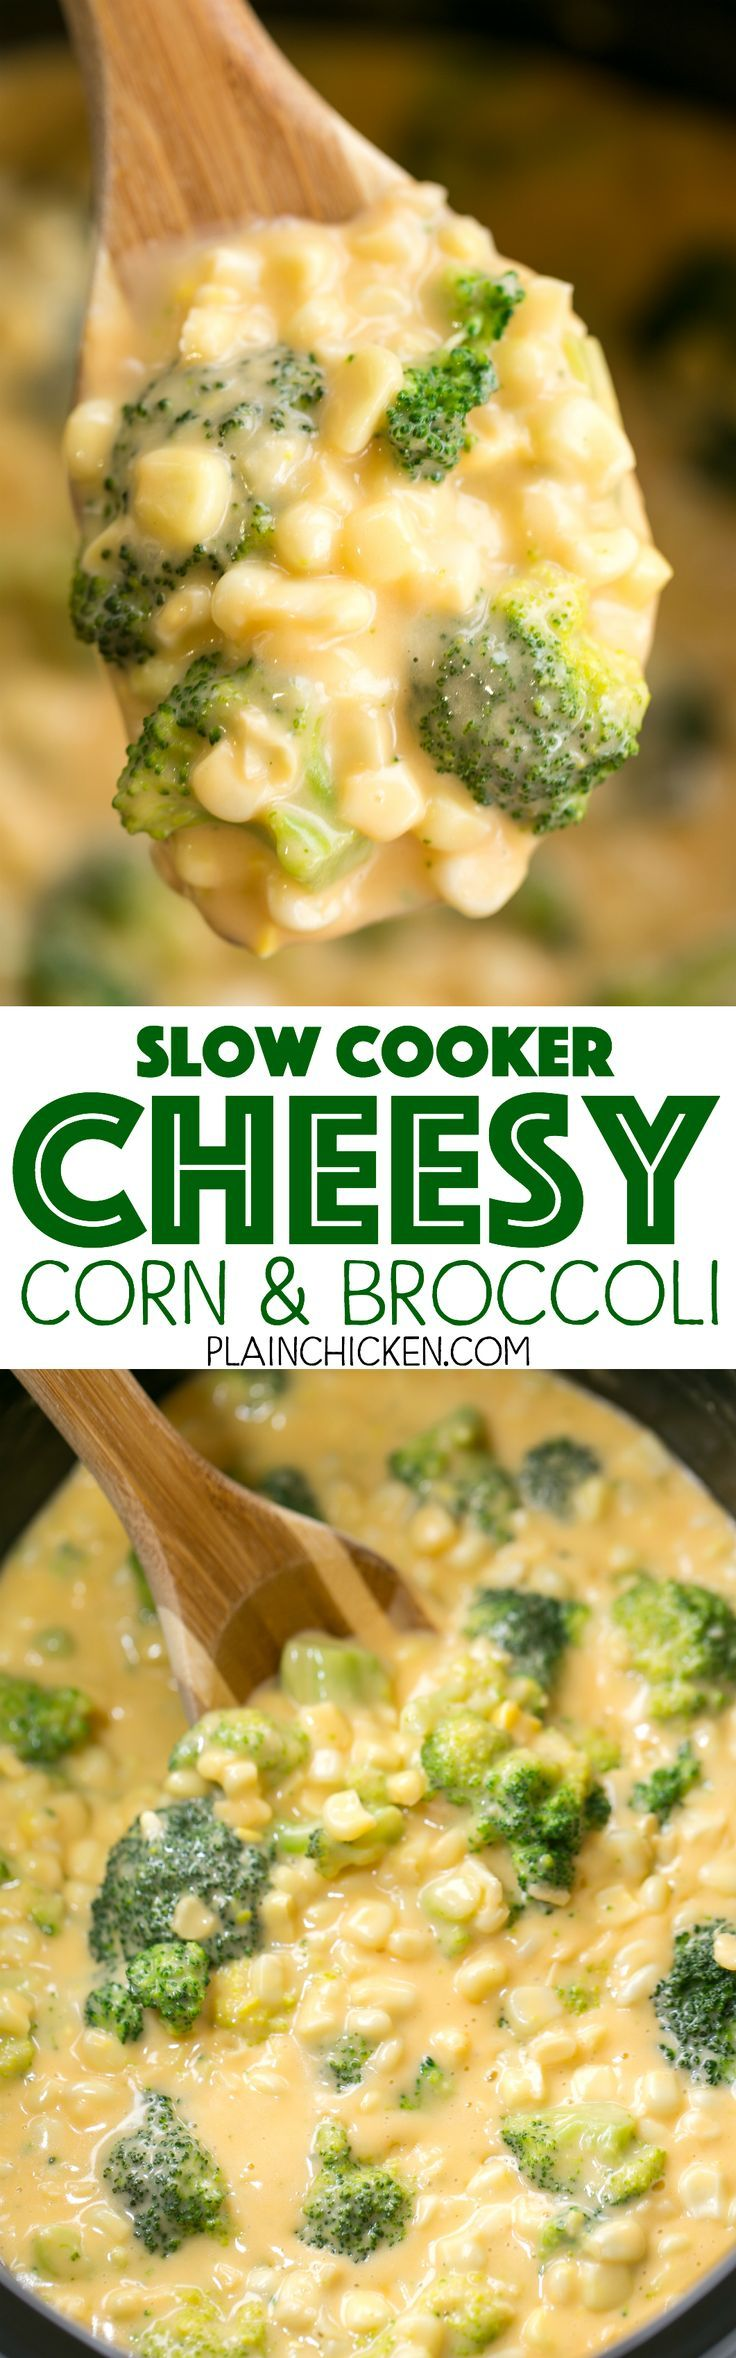 Slow Cooker Cheesy Corn and Broccoli - our favorite side dish! Corn, broccoli, Velveeta, cheddar cheese, cream of chicken soup and milk. Just throw everything in the slow cooker and let it work its magic. Can add ham to the slow cooker and make this a mai